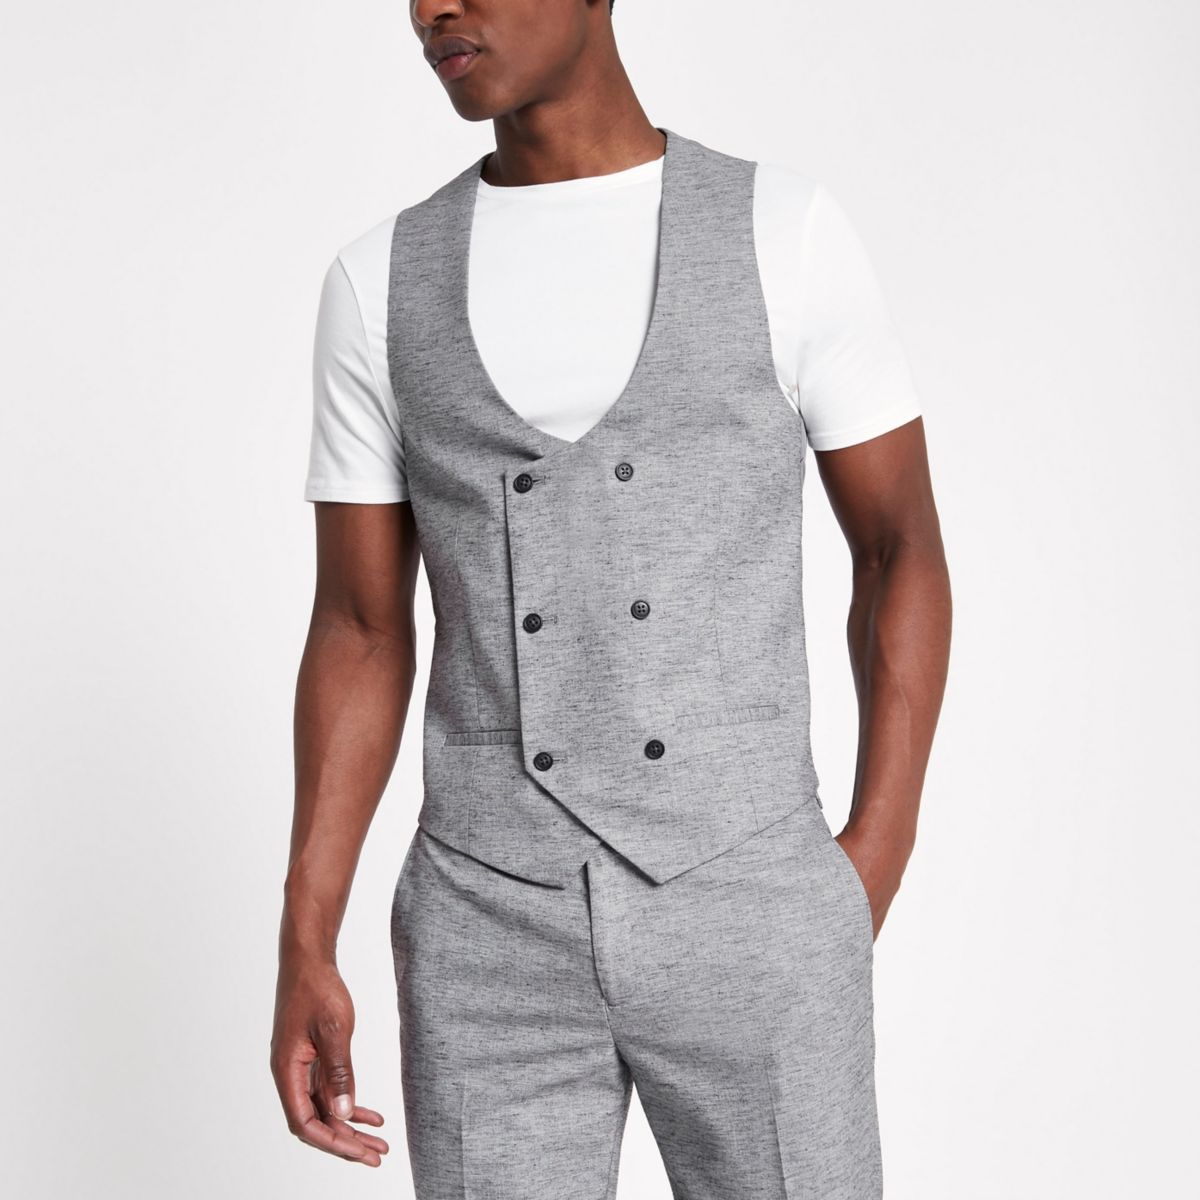 Light grey double breasted suit vest